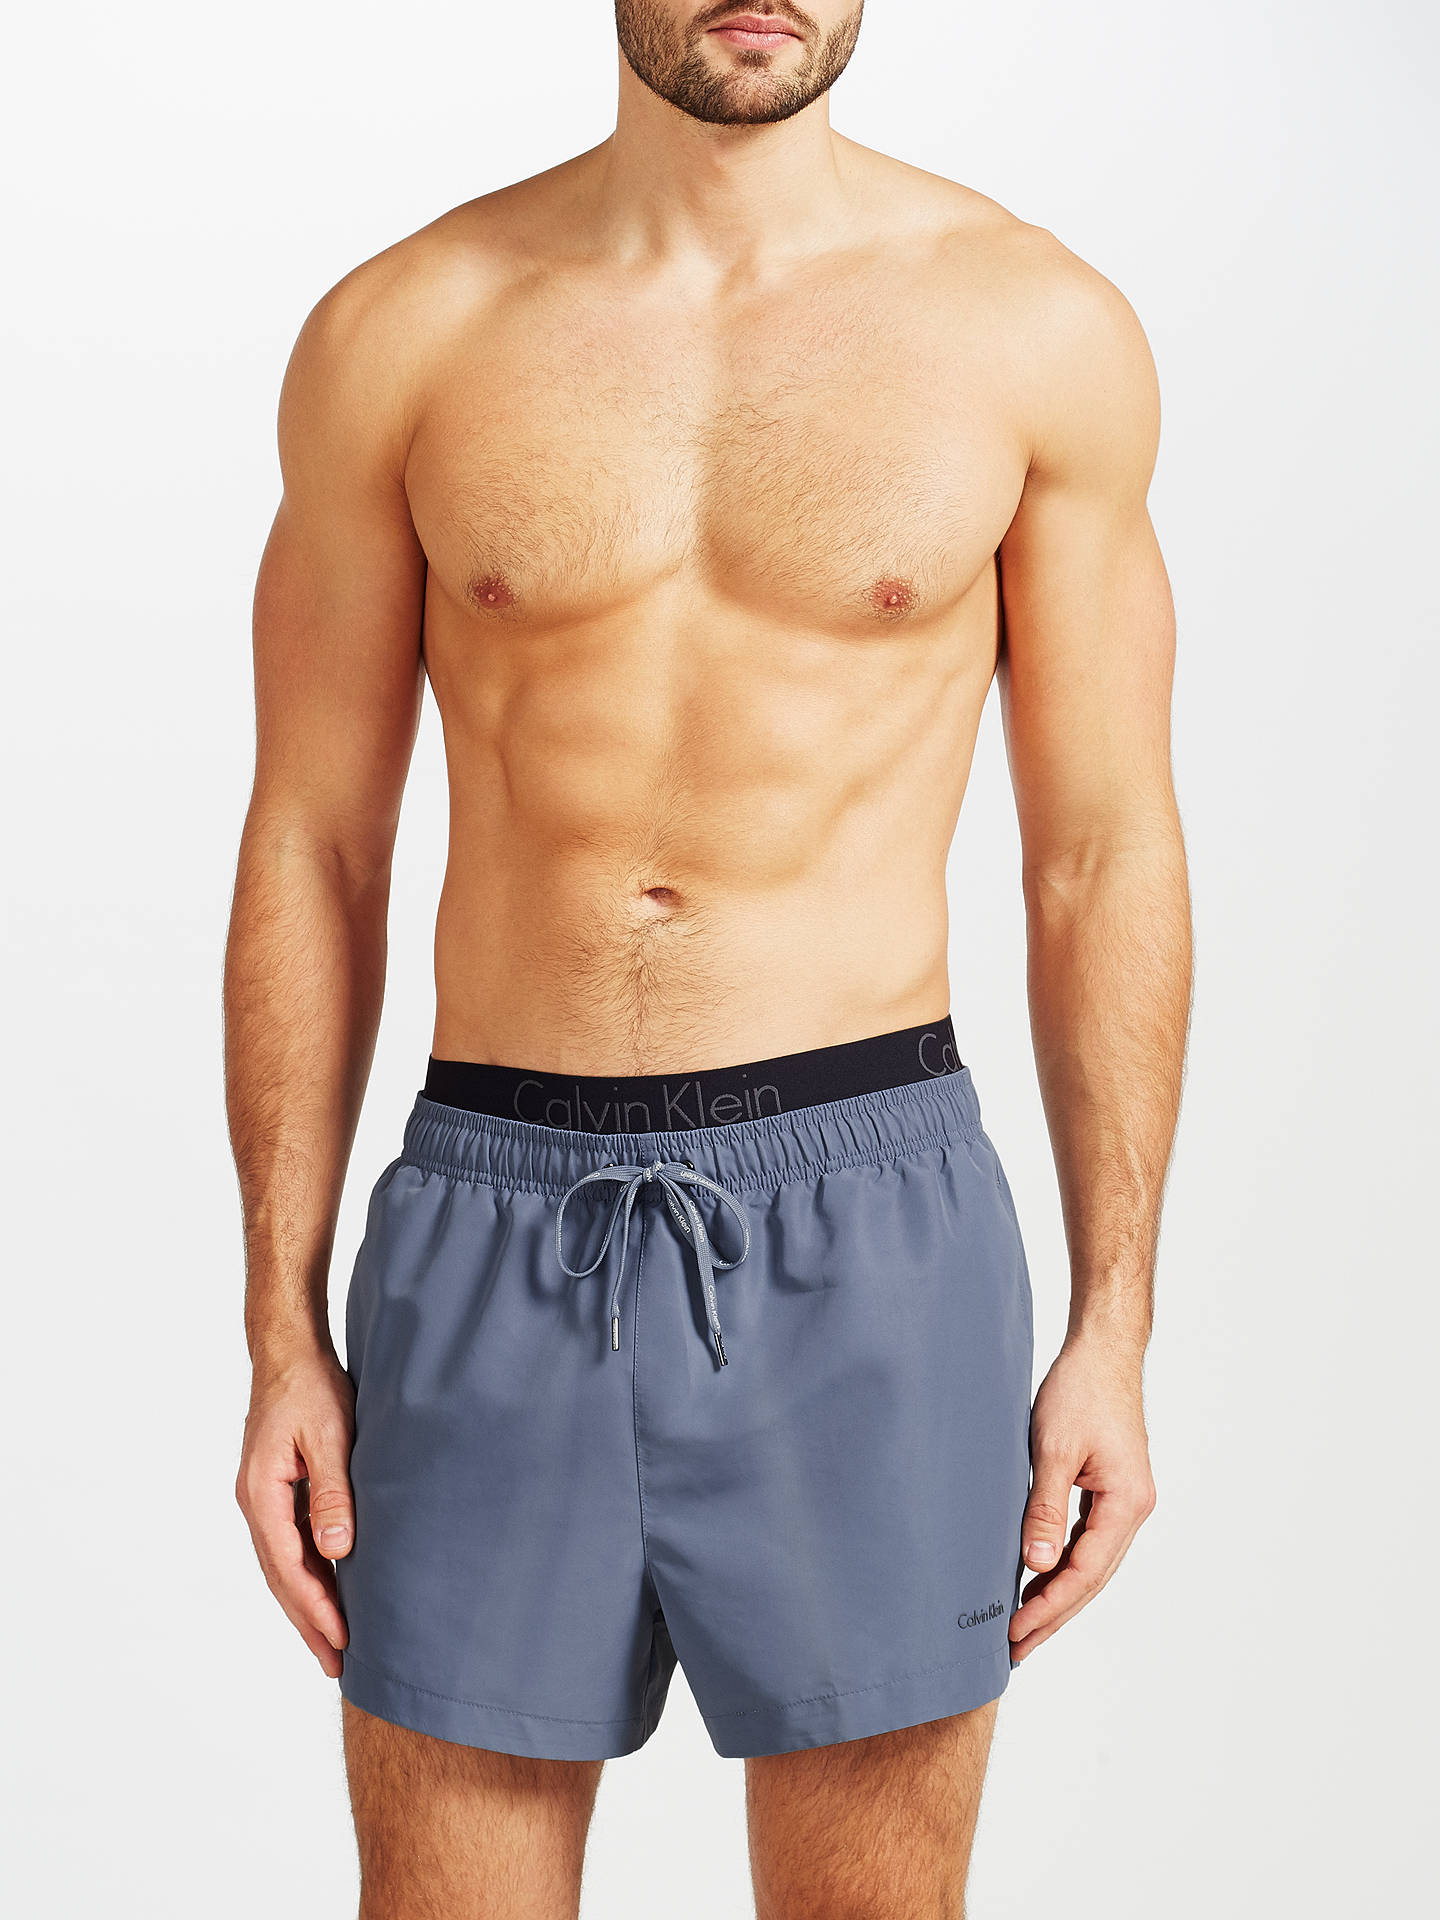 4156bde69b ... Buy Calvin Klein Double Waistband Swim Shorts, Grey, L Online at  johnlewis.com ...